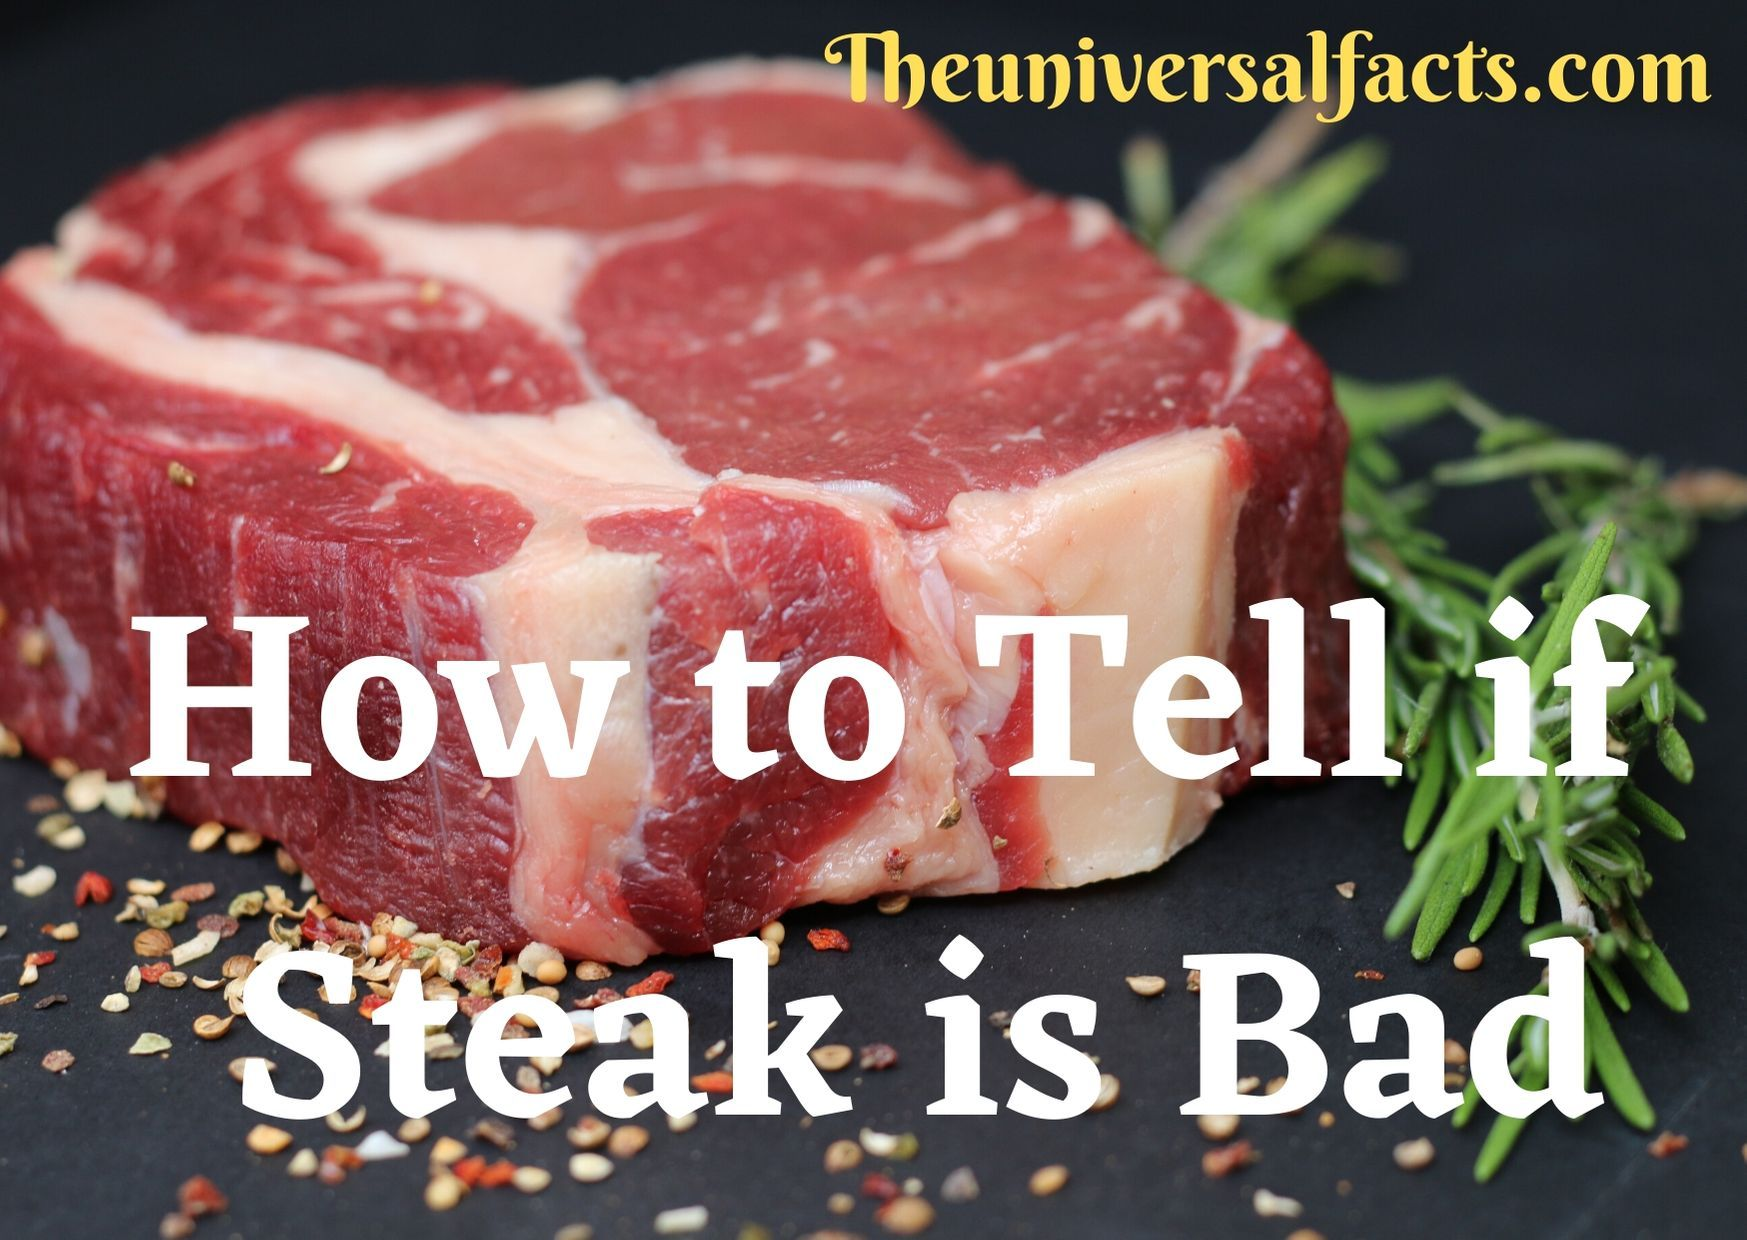 How To Tell If Steak Is Bad Foodborne Diseases Such As E Coli And Salmonellosis Are Responsible For Millions Of Cooking The Perfect Steak Perfect Steak Steak